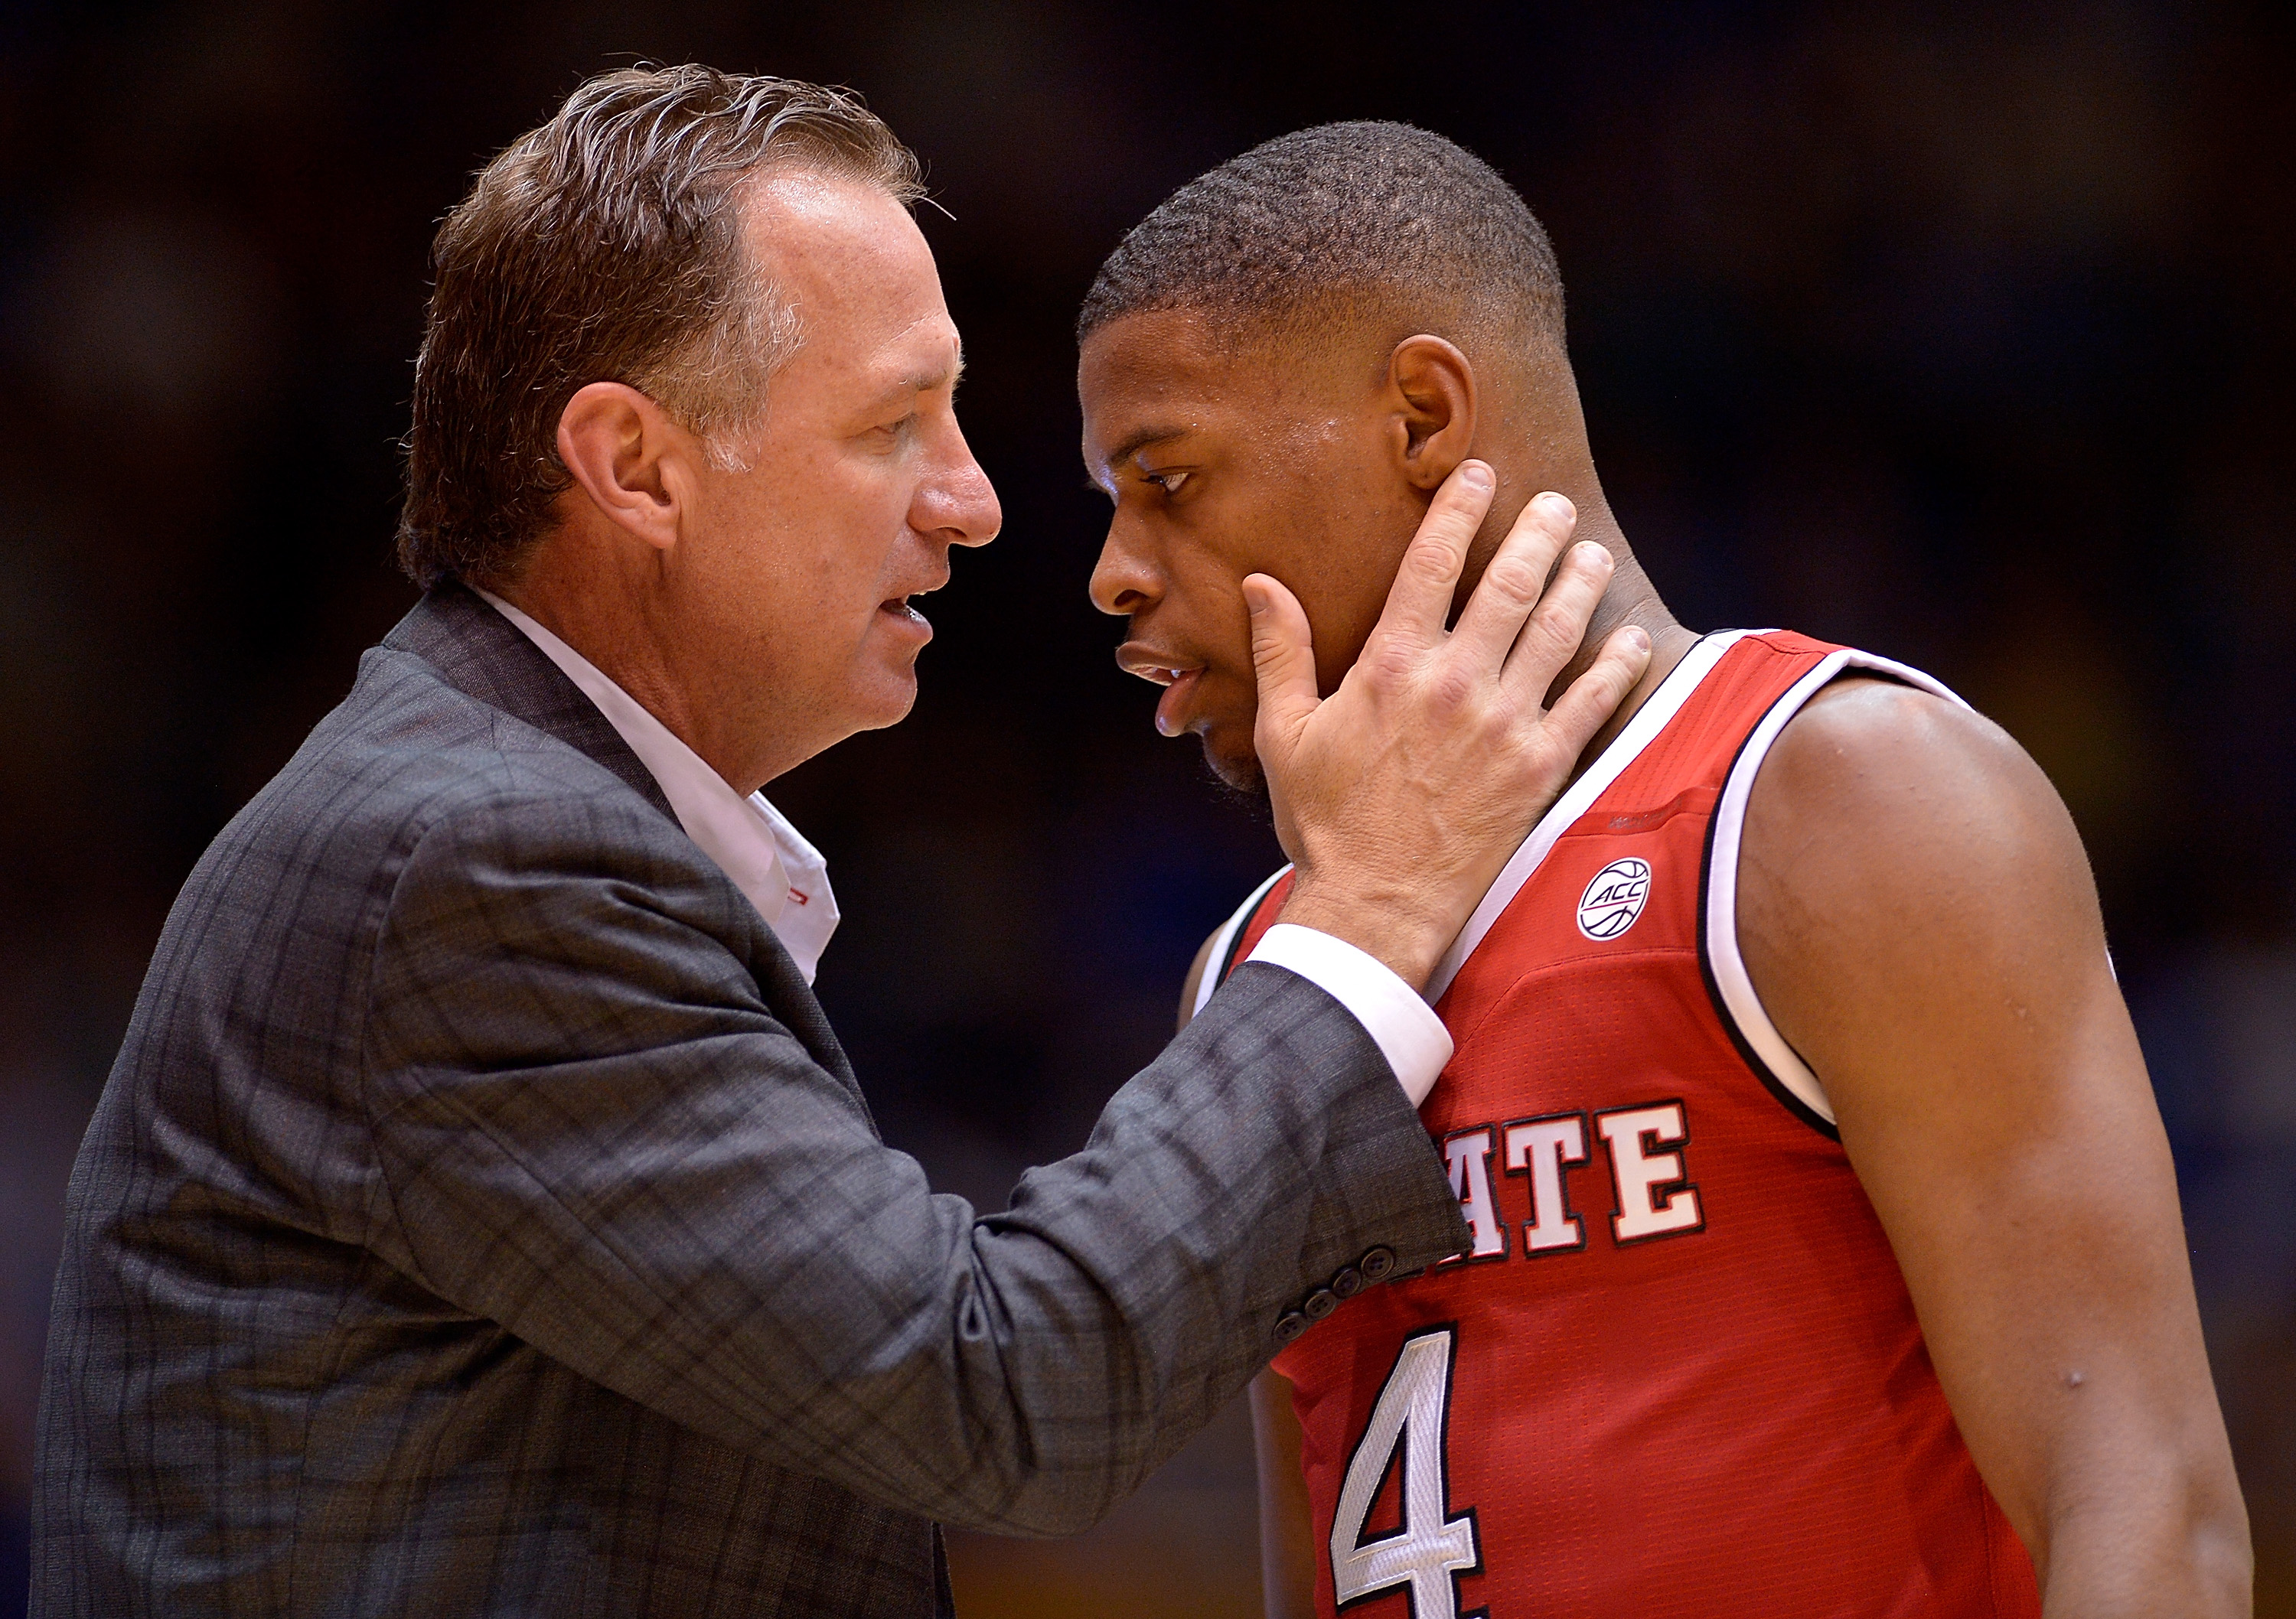 Outgoing N.C. State head coach Mark Gottfried talks to Dennis Smith Jr. during their 84-82 win against Duke at Cameron Indoor Stadium on Jan. 23. (Getty Images)